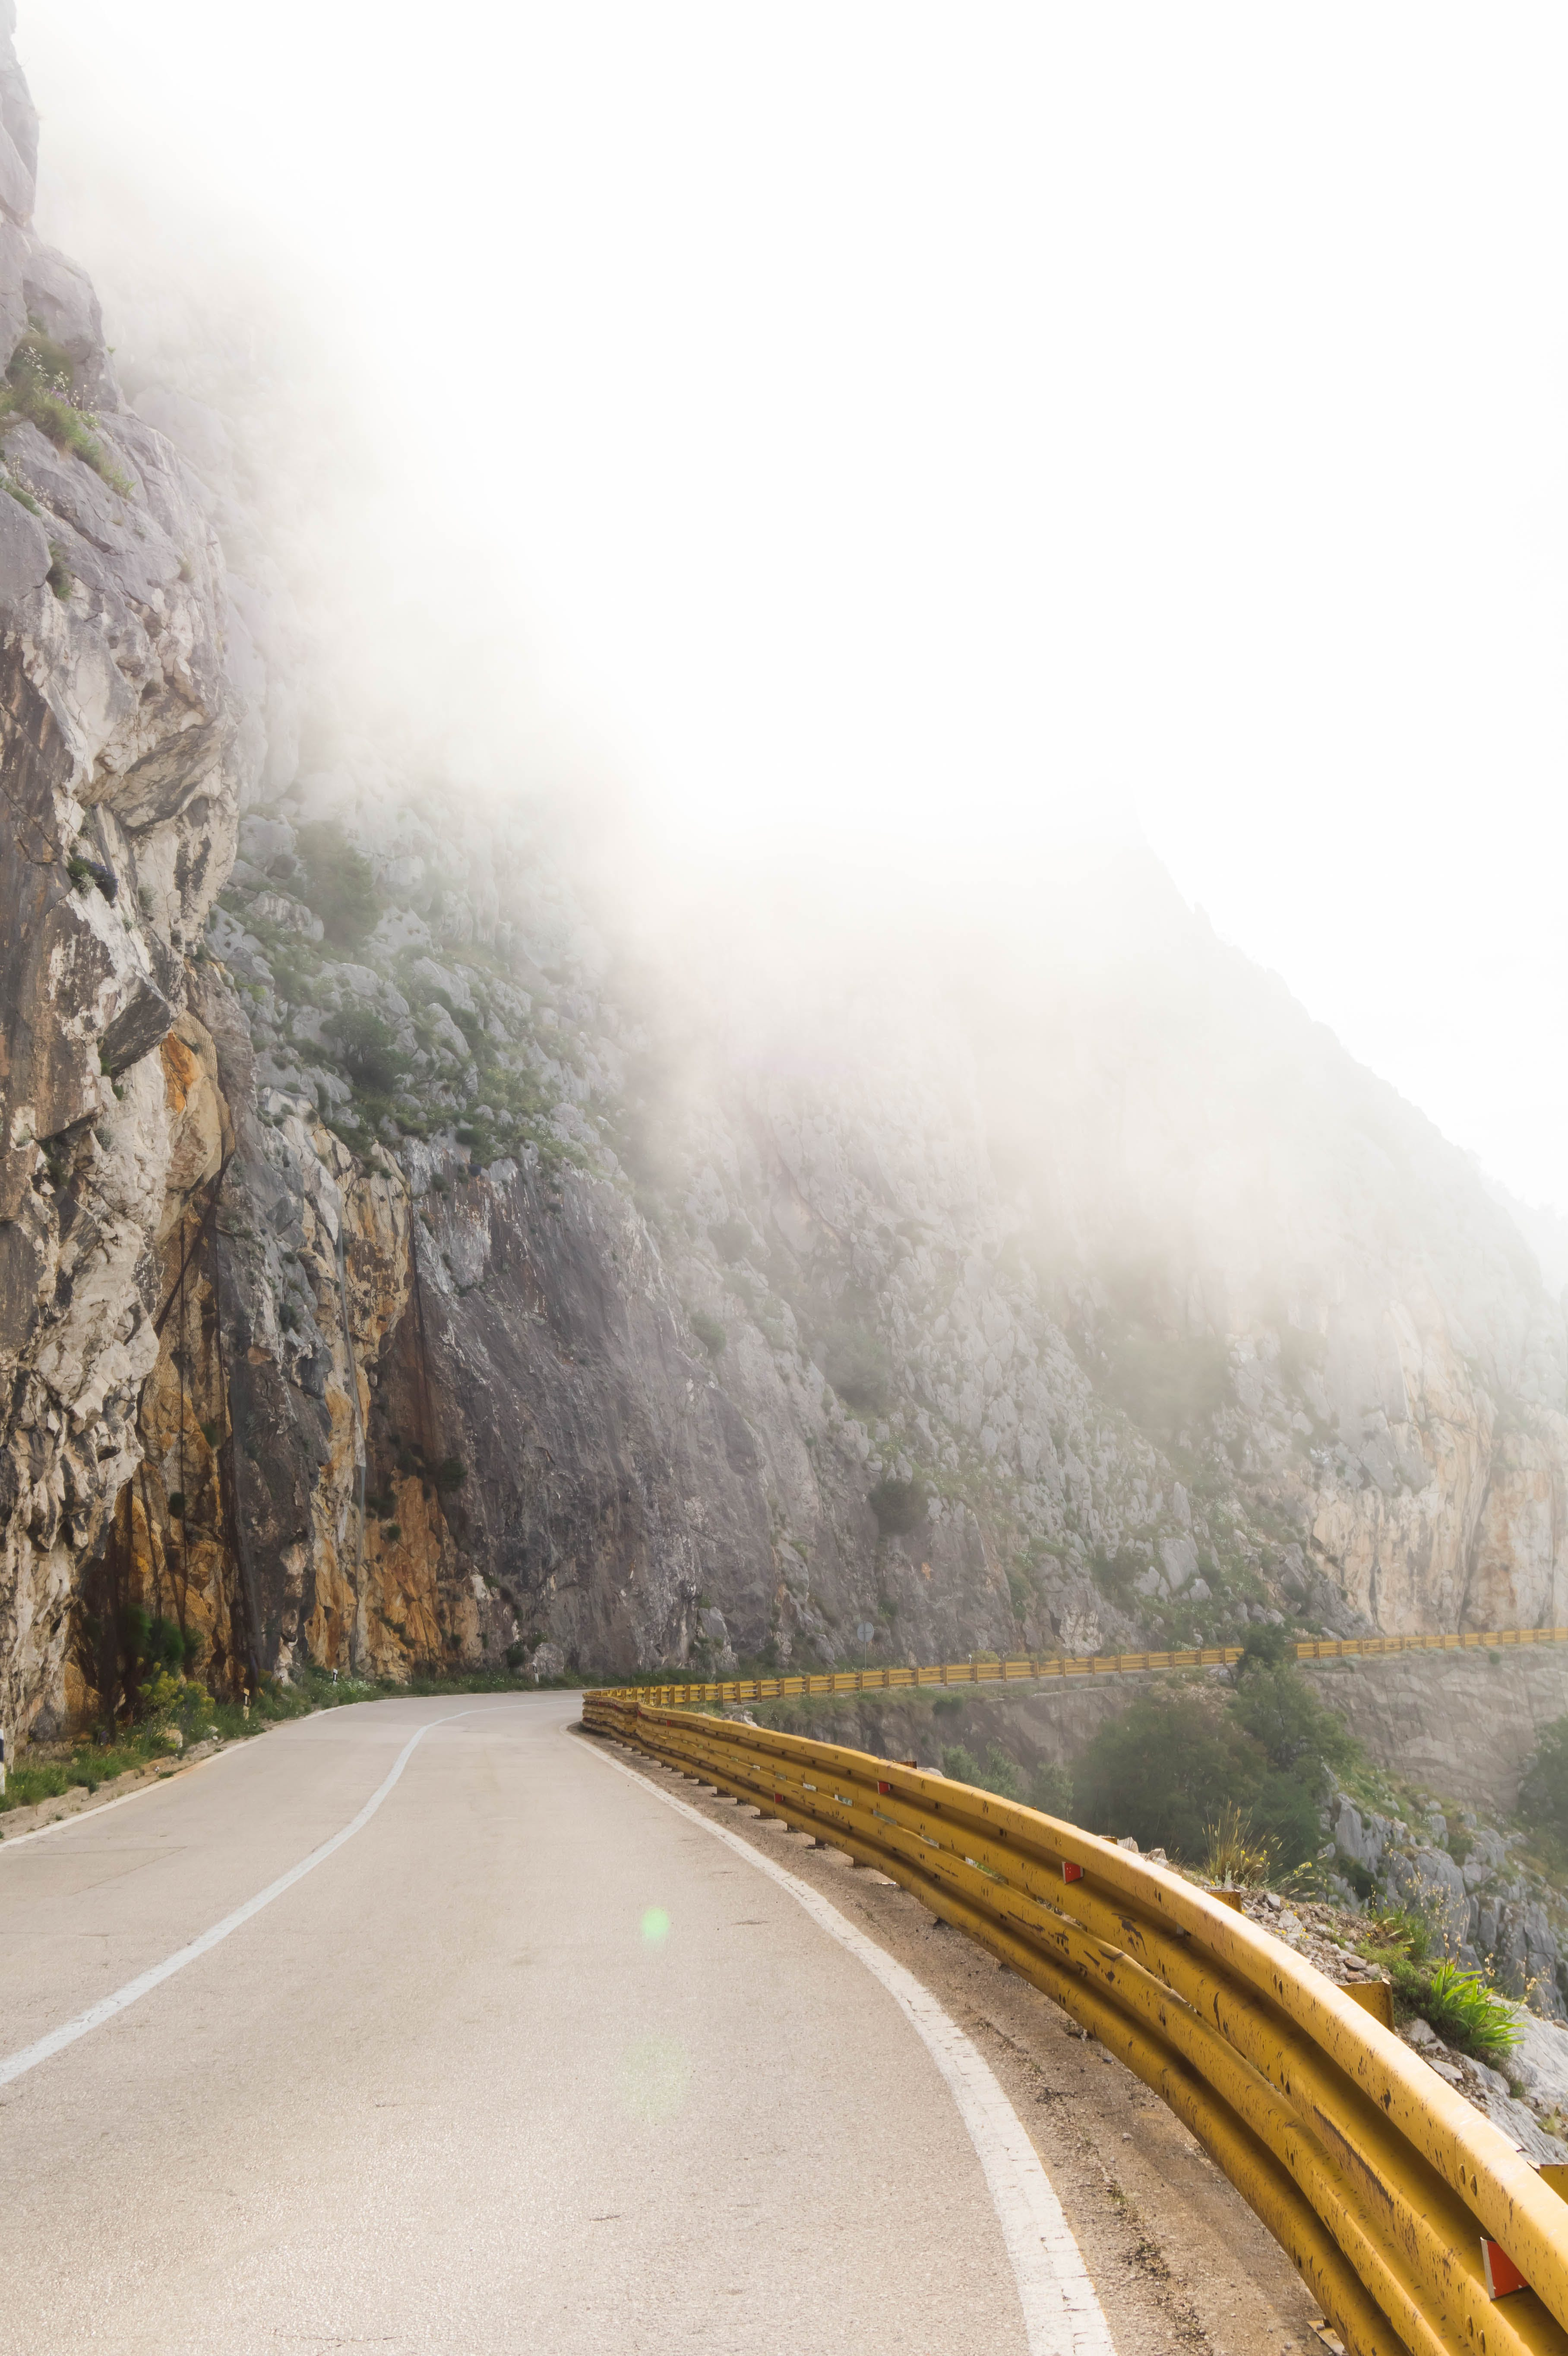 Photography of Road Near Foggy Mountain